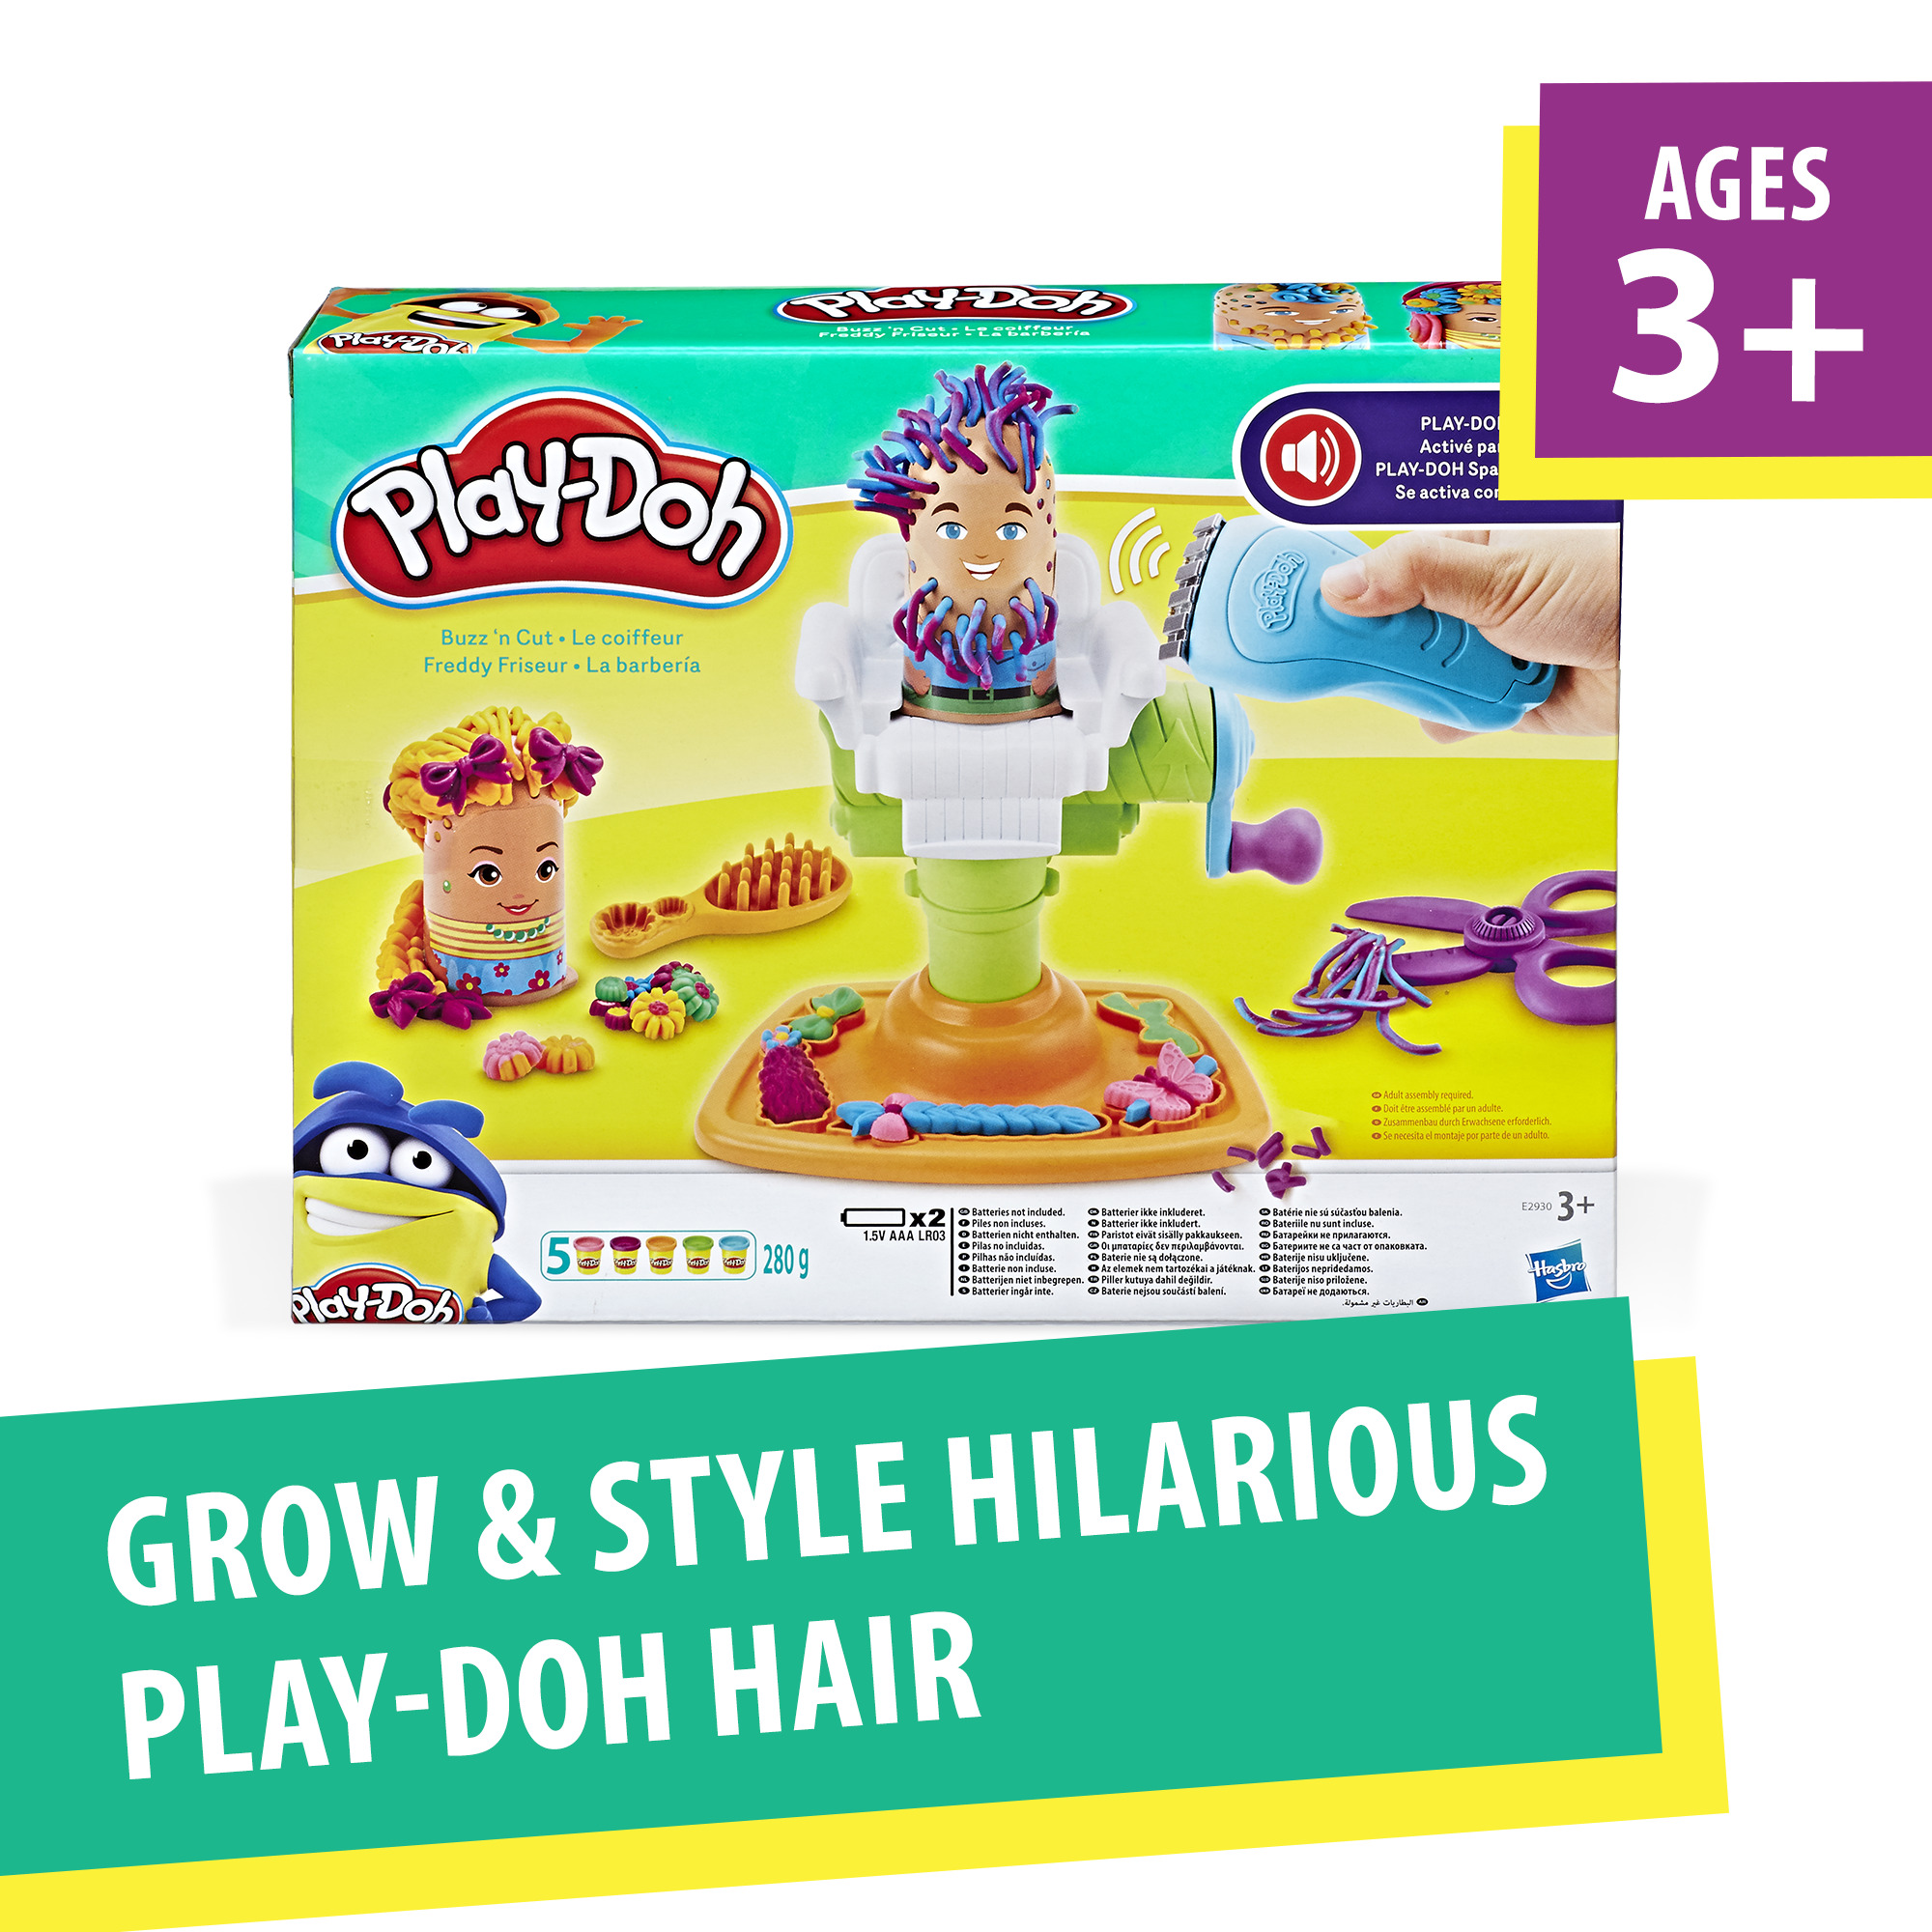 Play Doh Buzz N Cut Fuzzy Pumper Barber Shop Toy With Electric